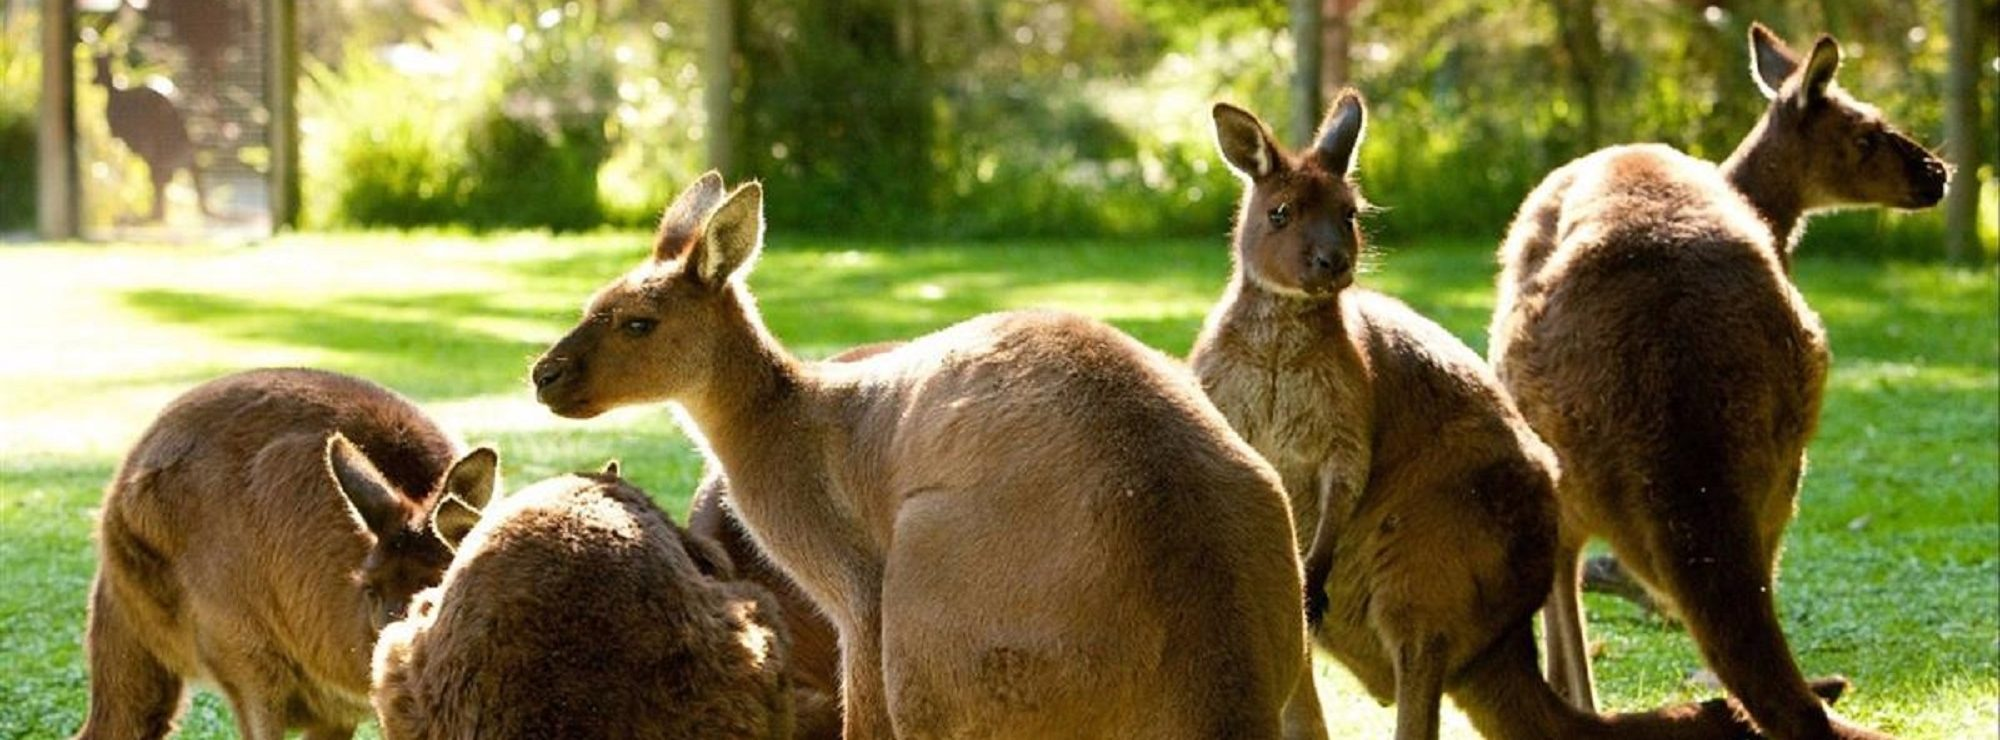 Healesville Wildlife Sanctuary: Taking the Puffing Billy Tour